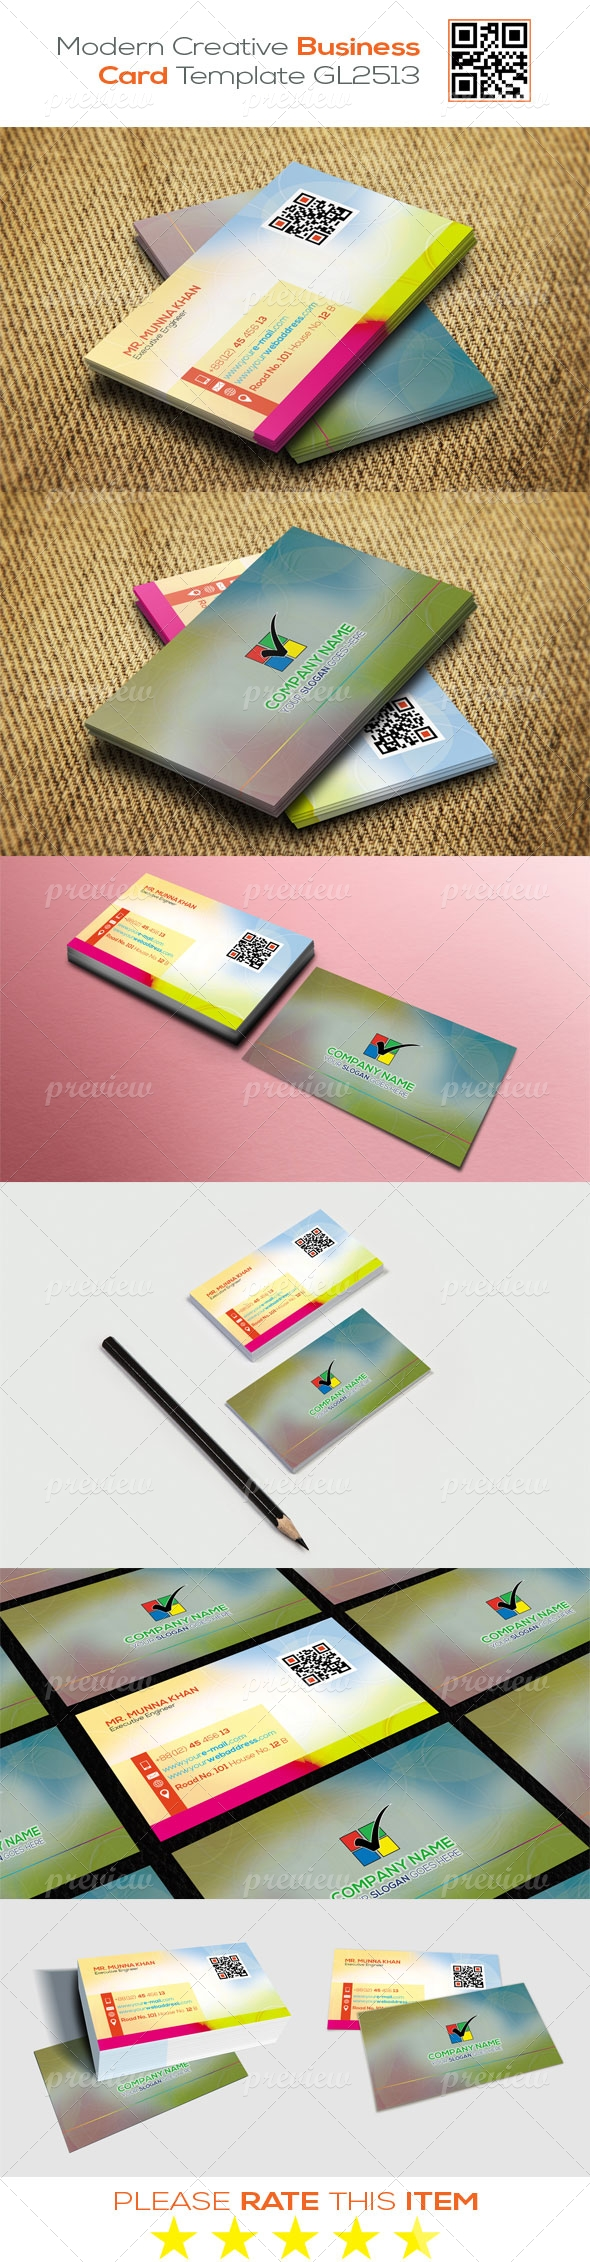 Modern Creative Business Card Template GL2513